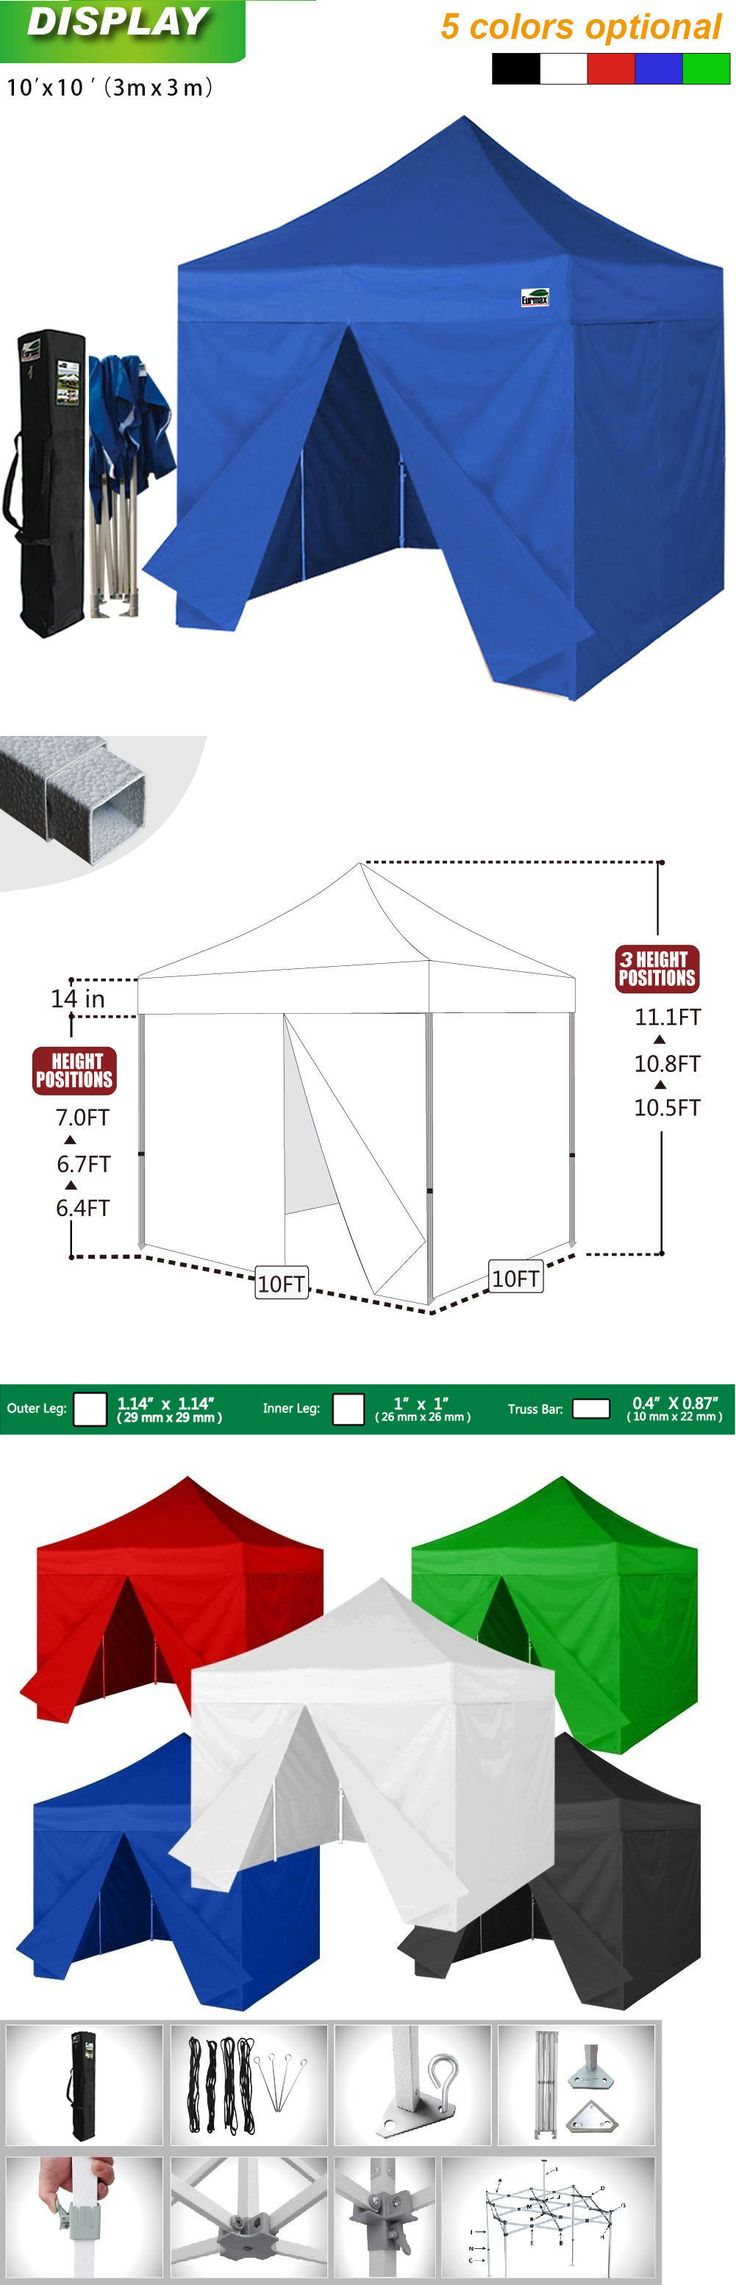 Other Camping Hiking Clothing 27362: Eurmax Display Canopy 10X10 Tent With 4 Enclosure Walls + Water Proof Carry Bag -> BUY IT NOW ONLY: $219.95 on eBay!